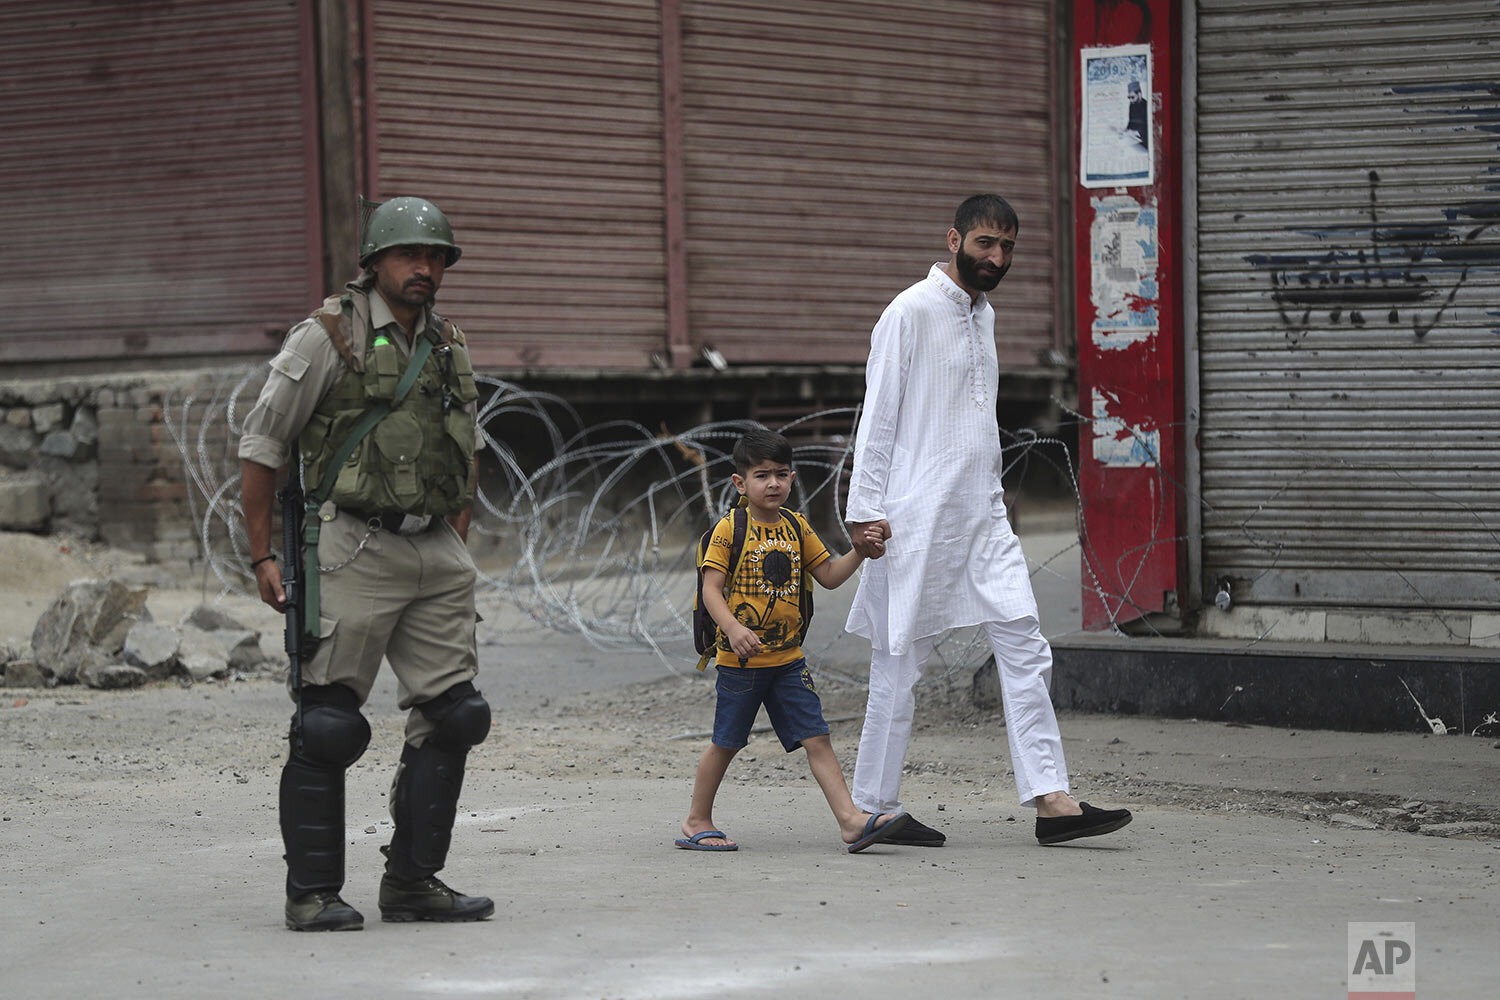 A man walks with a child past an Indian paramilitary soldier standing guard during restrictions ahead of Friday prayers in Srinagar, Indian controlled Kashmir, Friday, Aug. 30, 2019. (AP Photo/Mukhtar Khan)